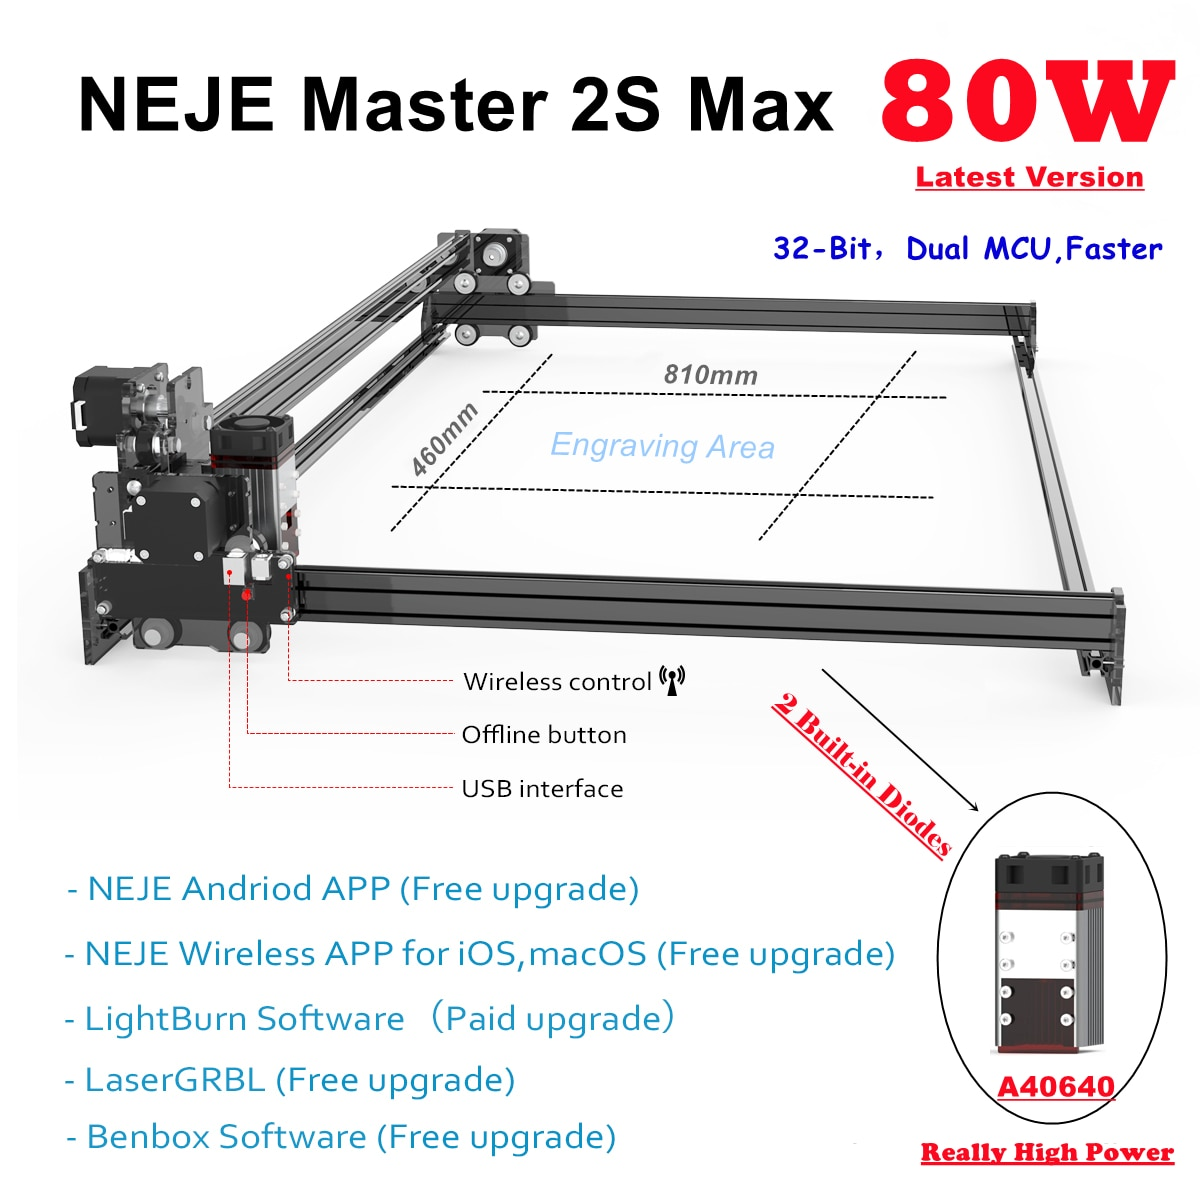 NEJE Master 2S Max 80W A40640 CNC Wood Laser Engraver Cutter Cutting Engraving Machine Router Lightburn LaserGRBL App Control neje master 2s max 80w cnc double beam laser engraver cutter engraving cutting machine bluetooth lasergrbl lightburn 460x810mm